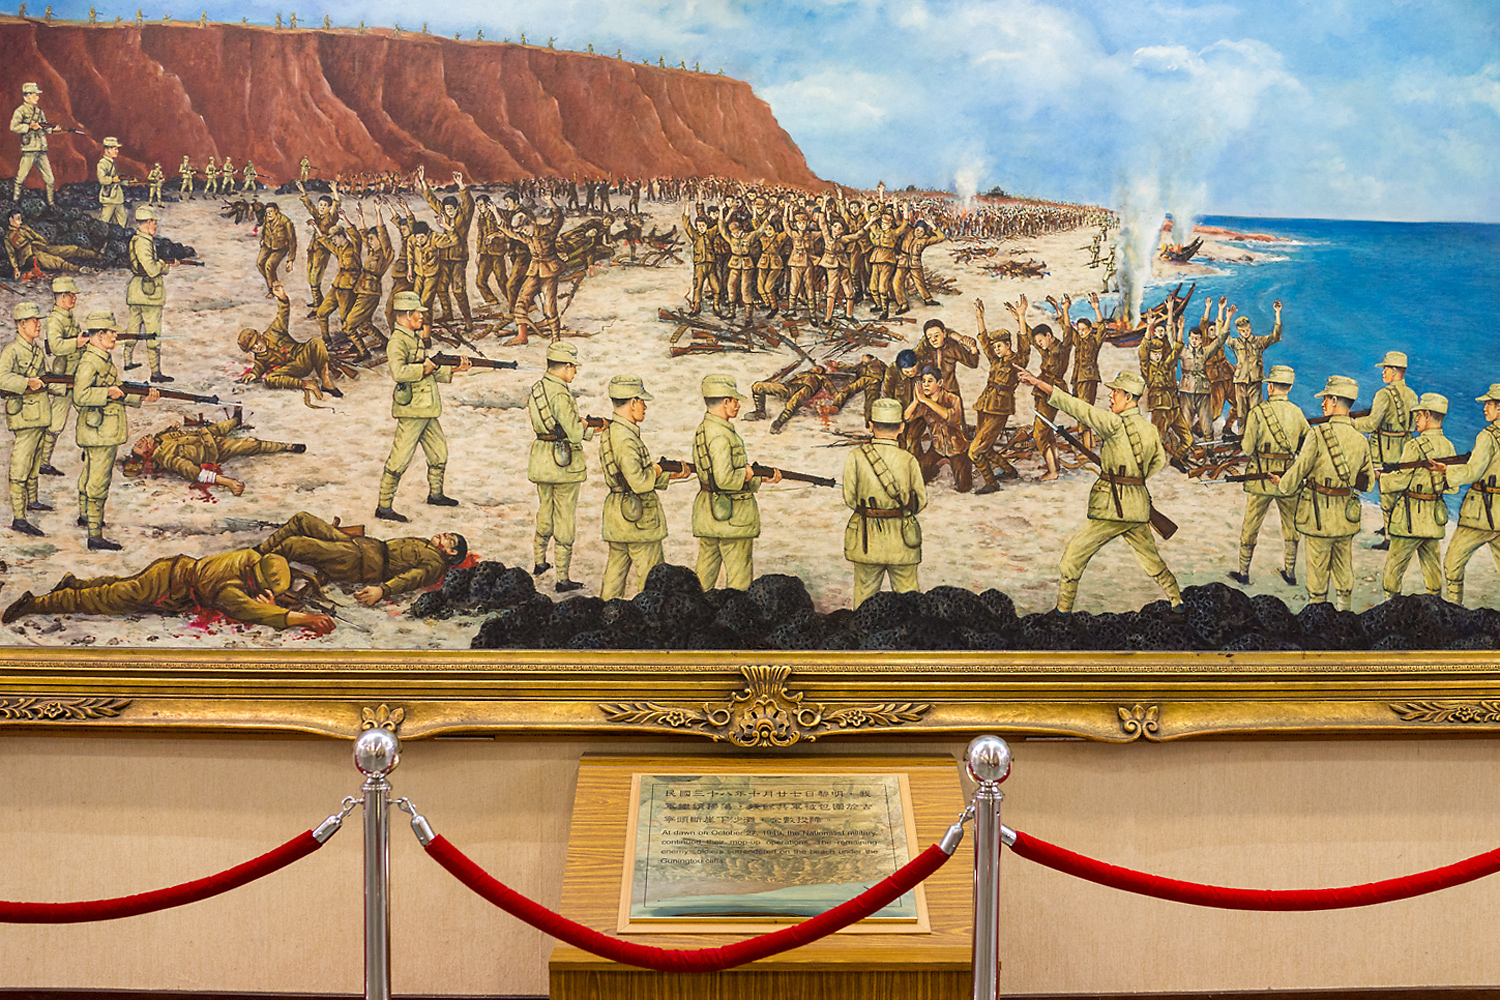 At the Guningtou War Museum near the site of the decisive battle of October 1949, paintings depict scenes from the bloody fight over Kinmen during the Chinese Civil War. The Communists' attempt to take Kinmen and Matsu in the Taiwan Strait as a precursor to a planned assault on Taiwan failed when the tide changed, stranding the Communist soldiers on Kinmen and forcing them to surrender. Some 6,000 PLA soldiers were captured and remained on Kinmen to be 'reeducated' by the Nationalist government.